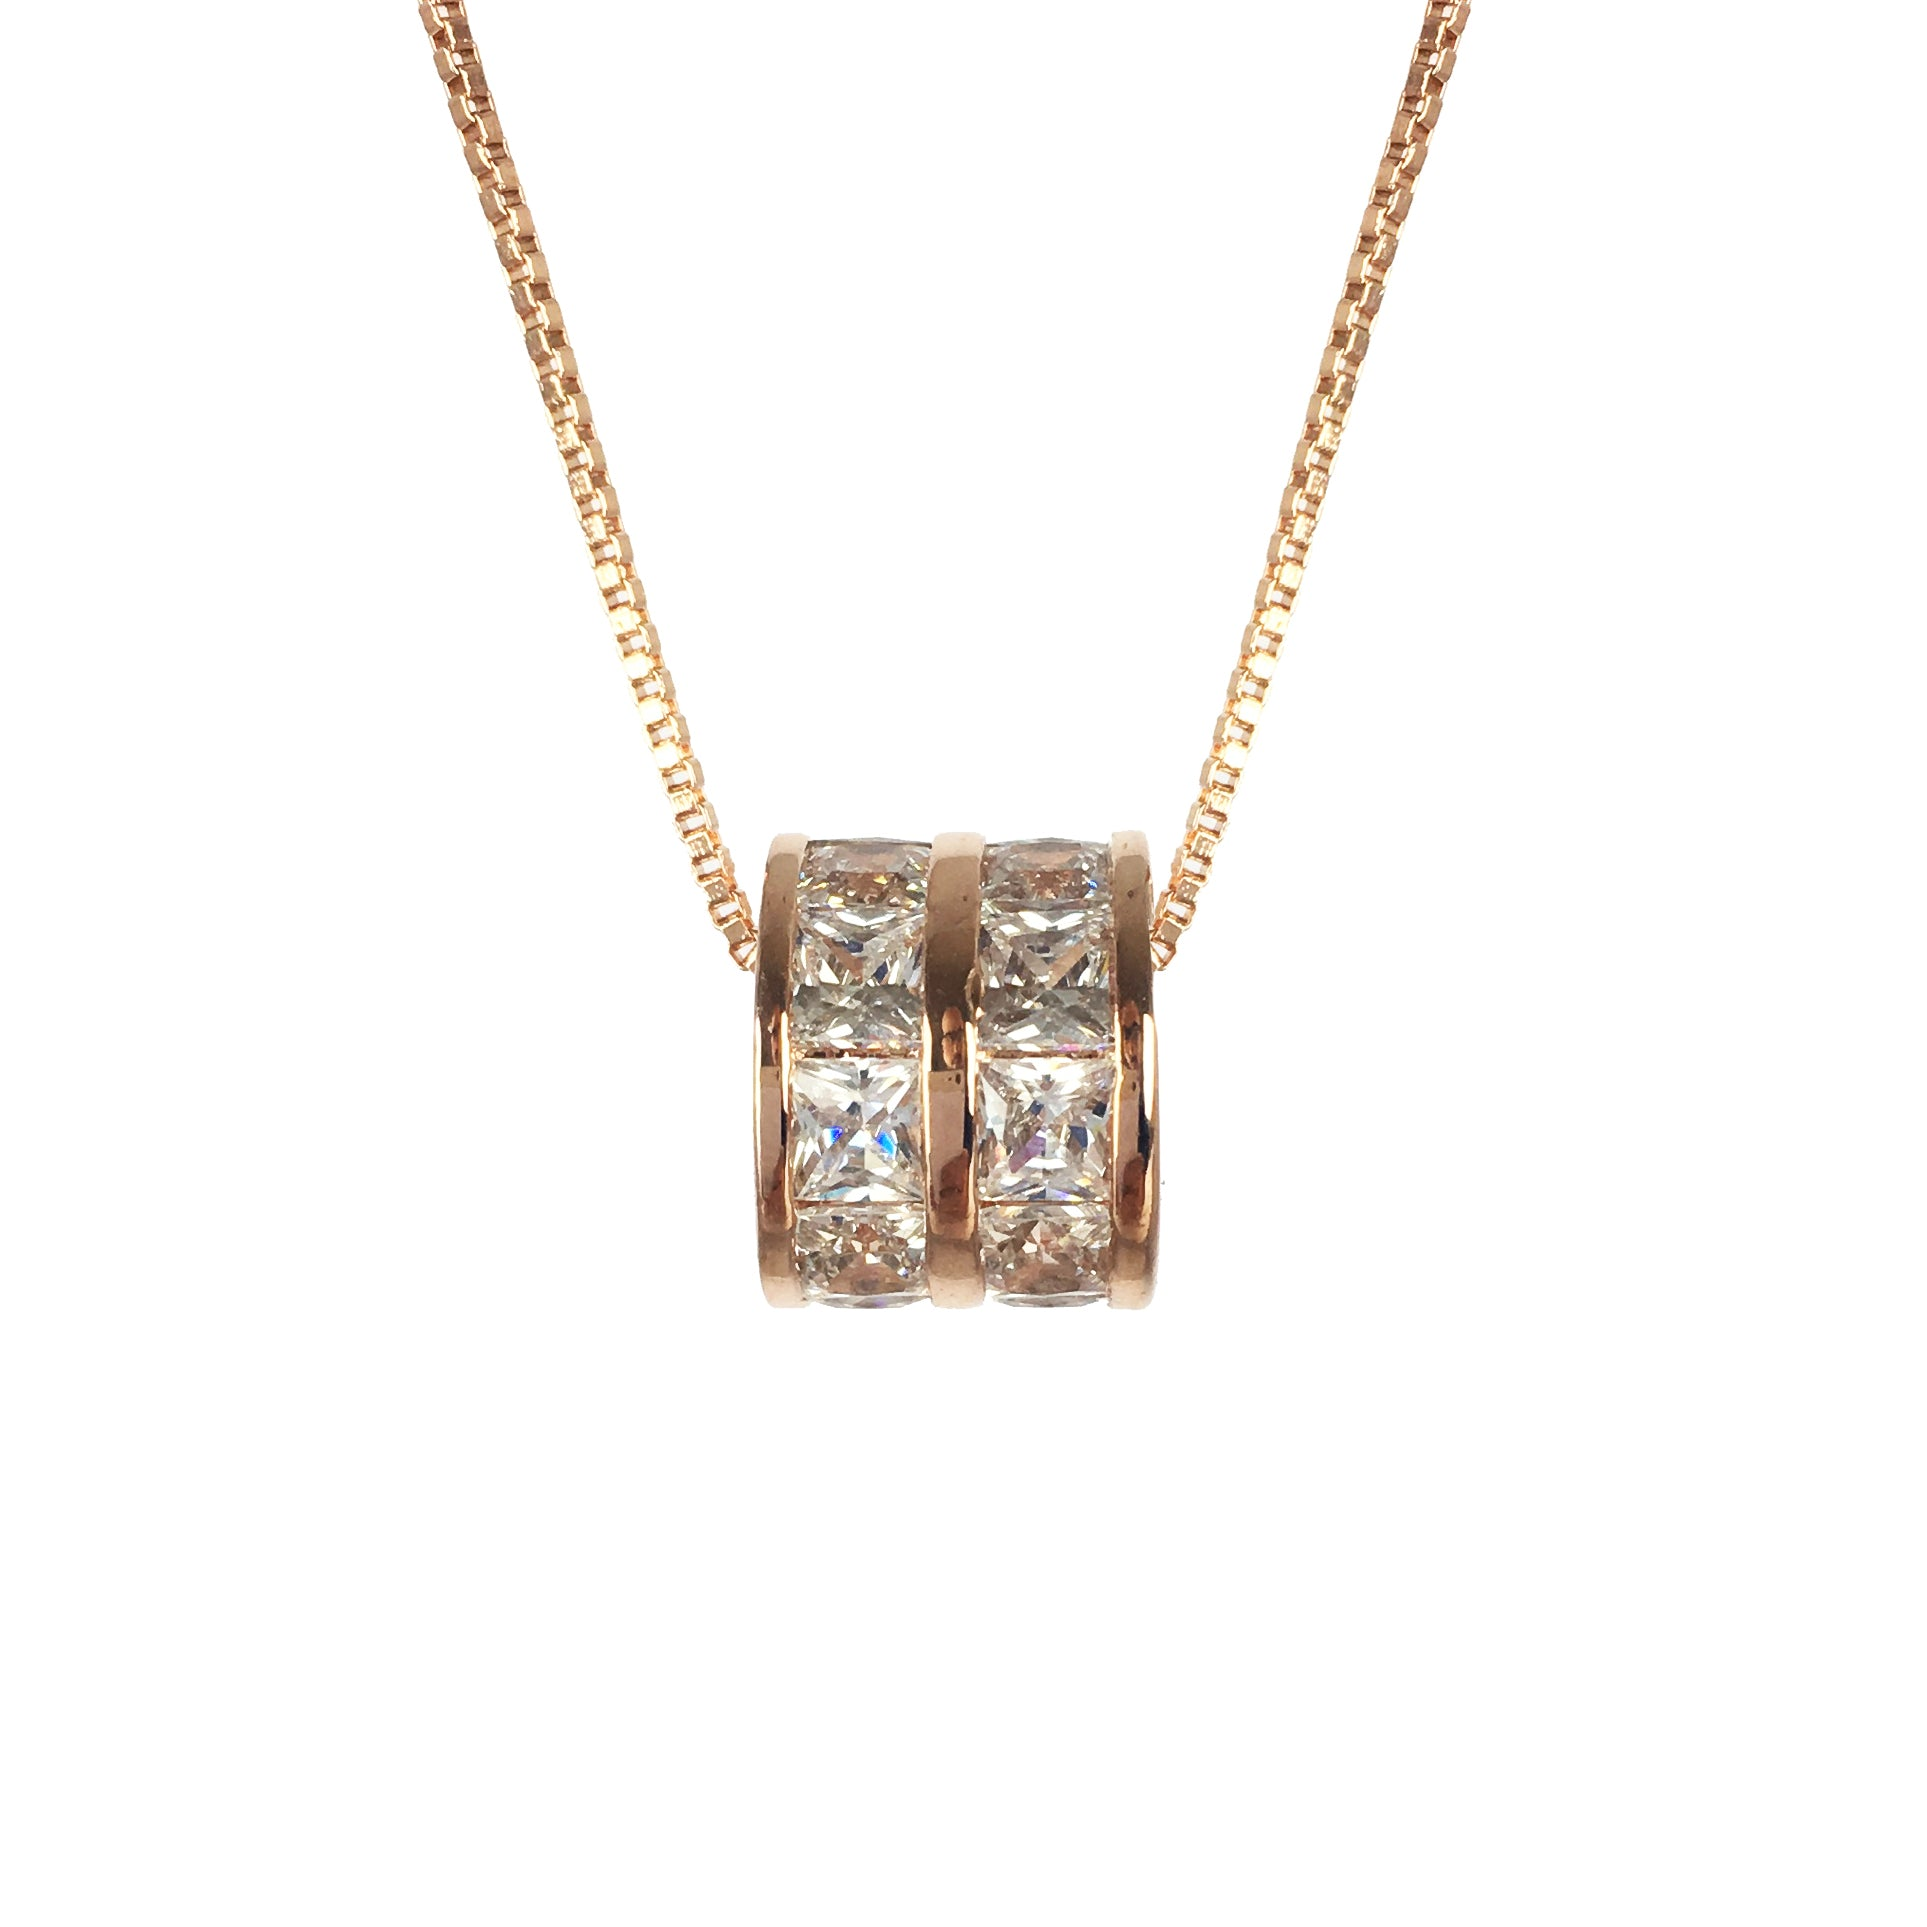 h webstore white heart necklace pendant product samuel d cubic number gold zirconia